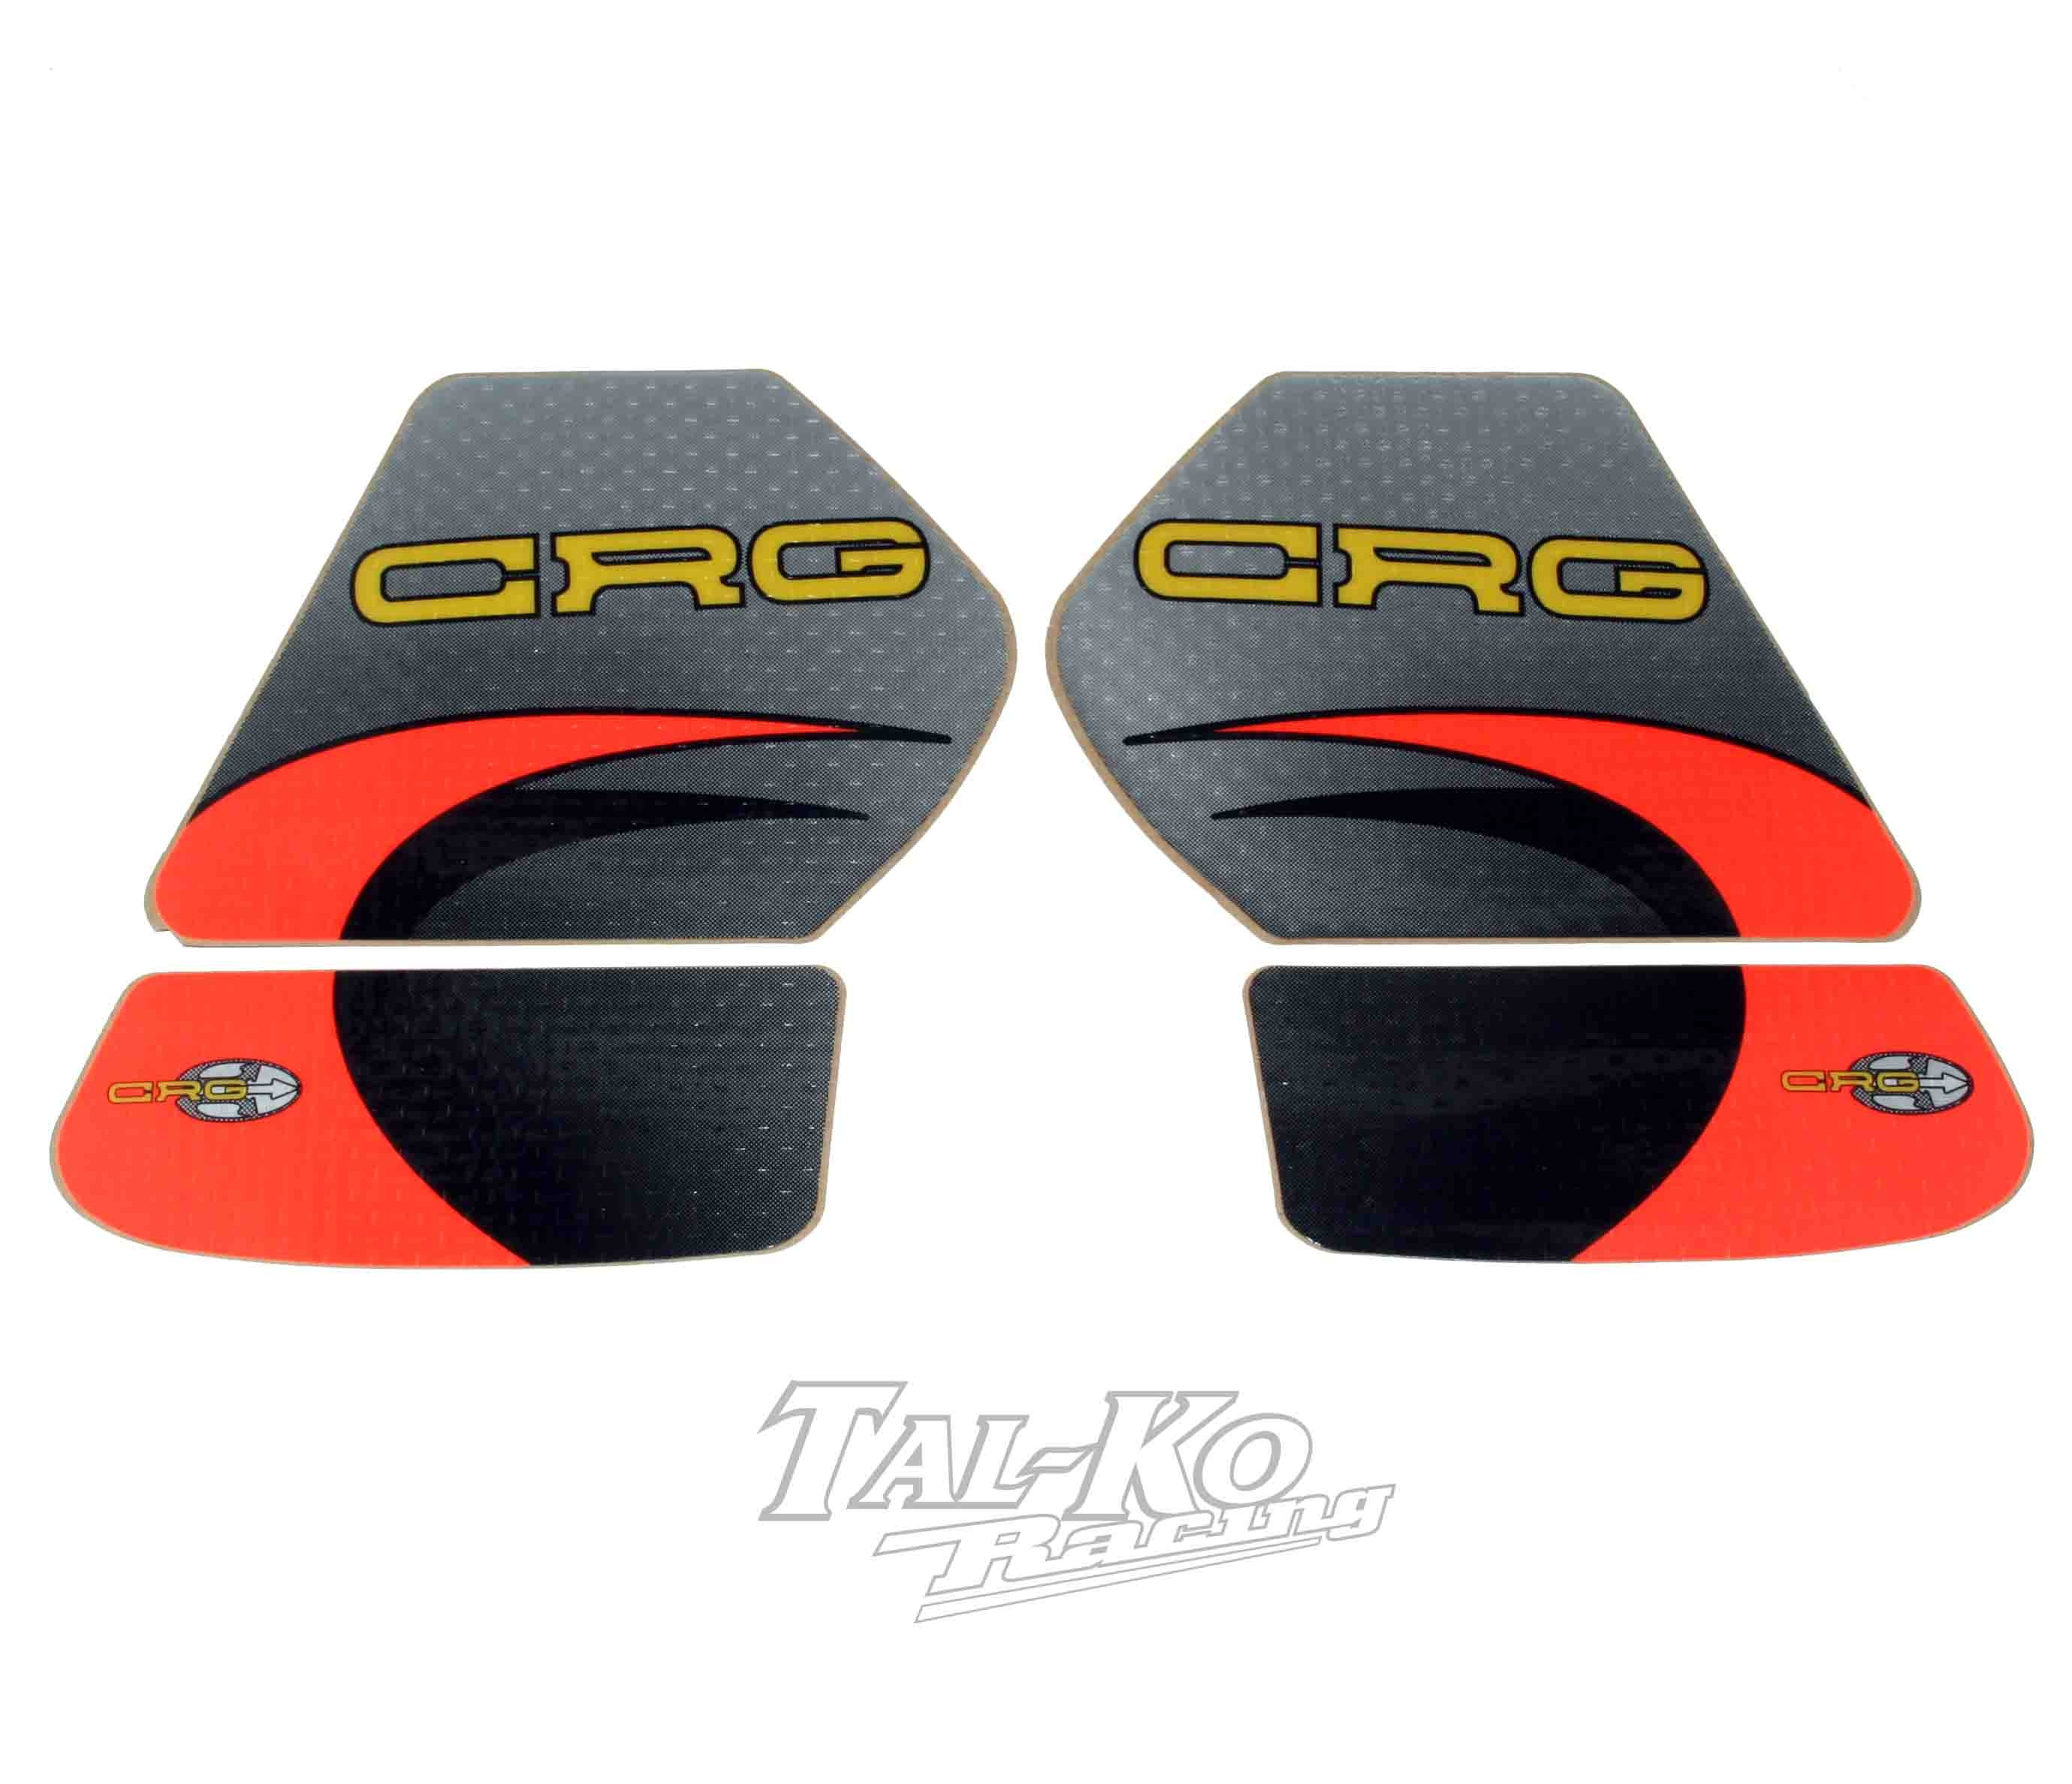 CRG STICKER DECAL TANK KIT 8.5 LIT